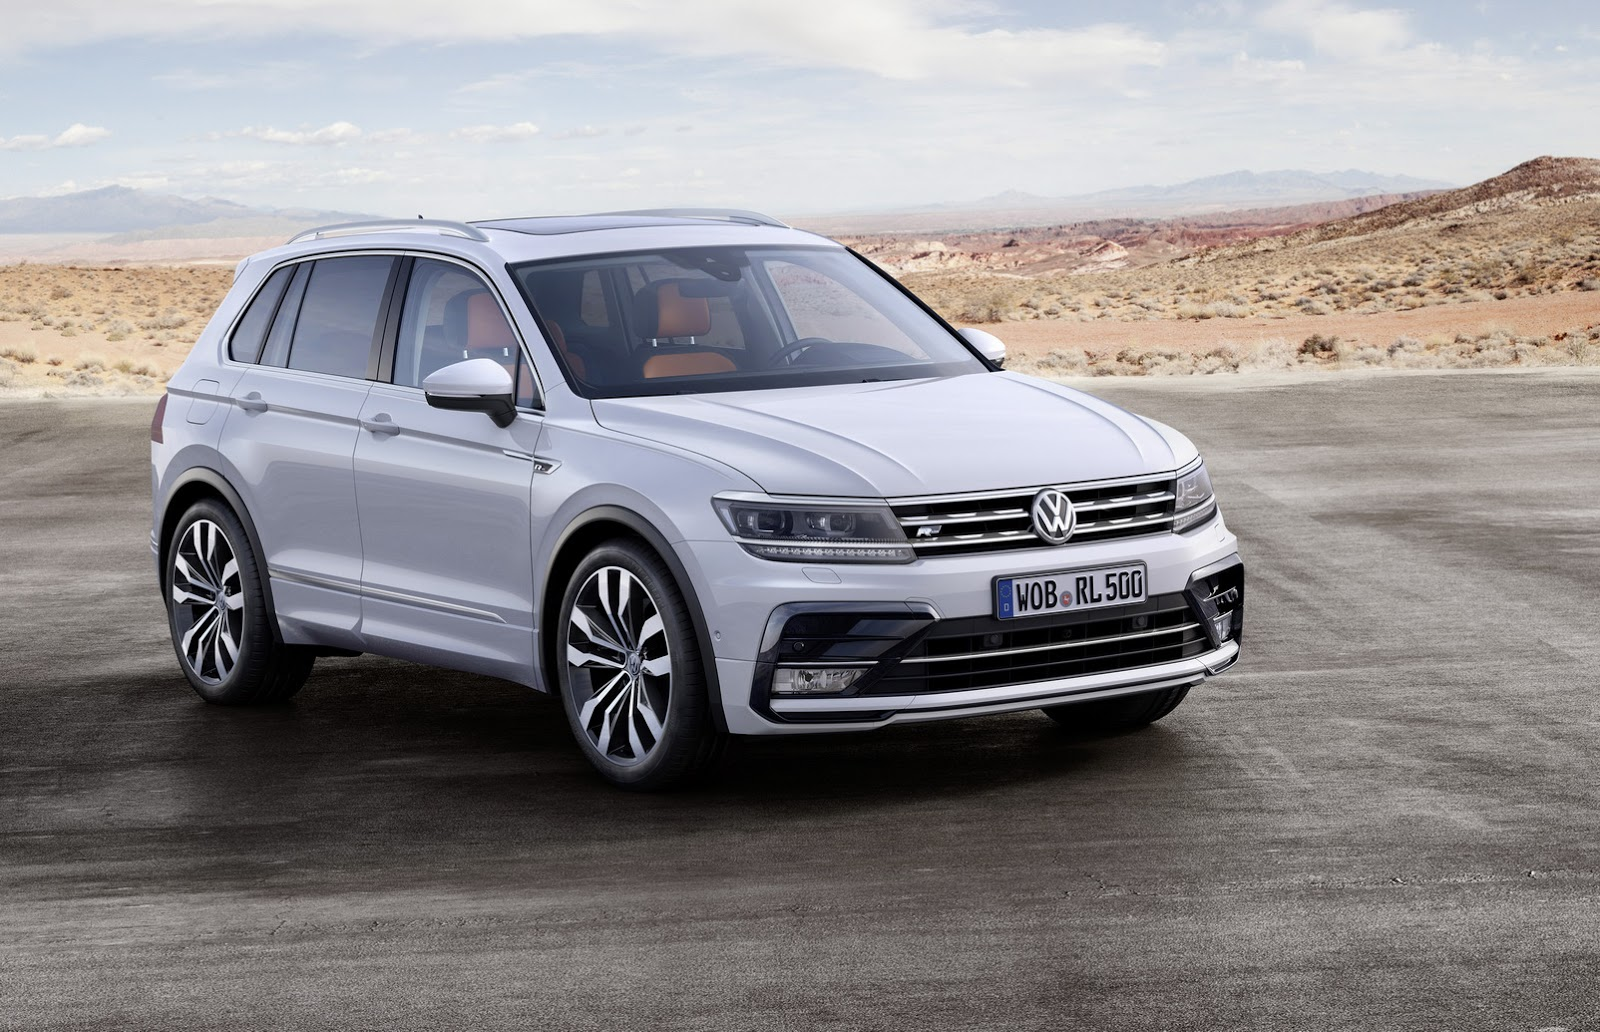 New-2017-VW-Tiguan-6.jpg